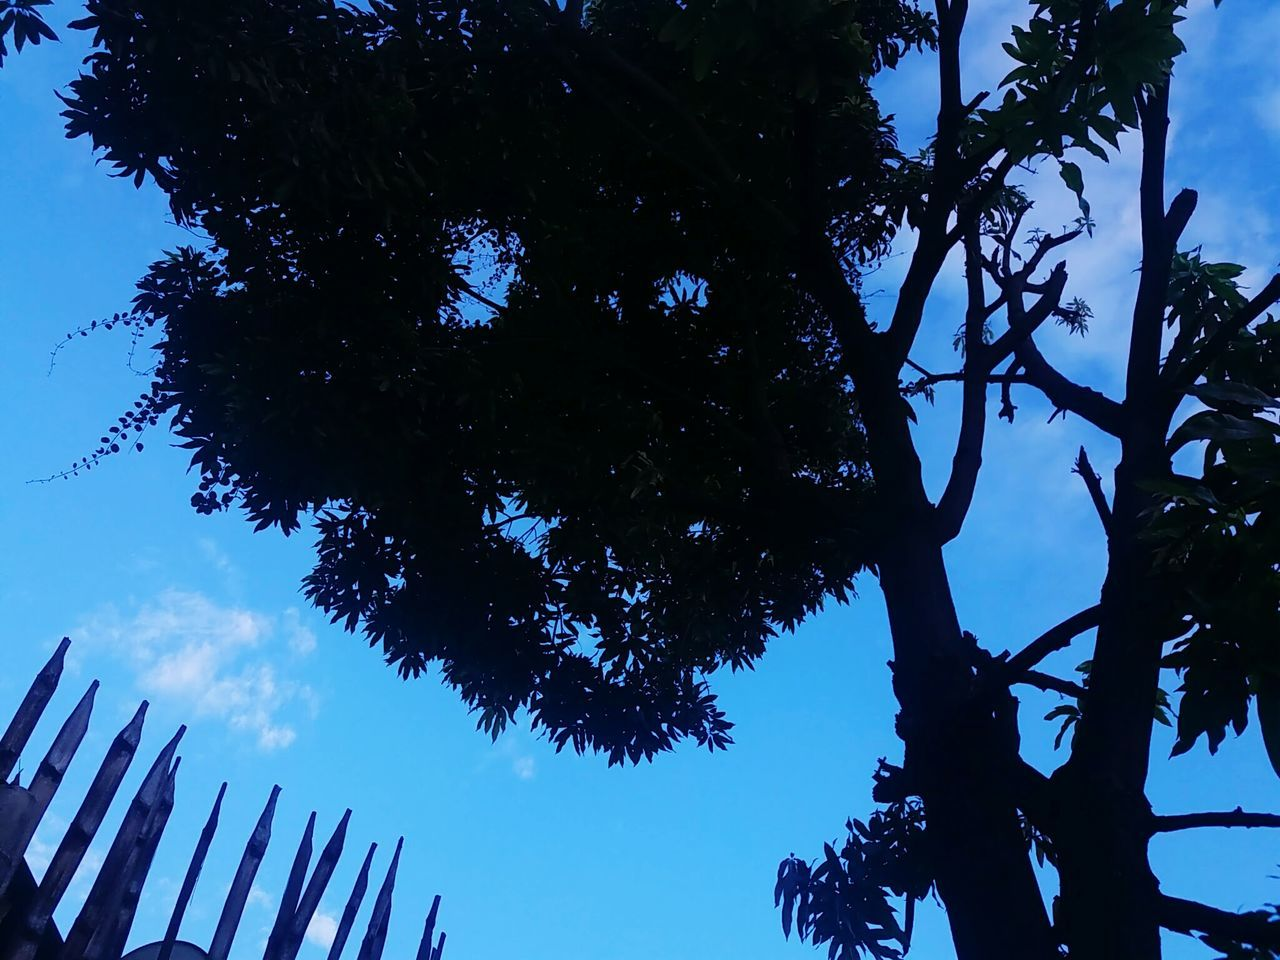 tree, low angle view, growth, day, branch, outdoors, nature, no people, sky